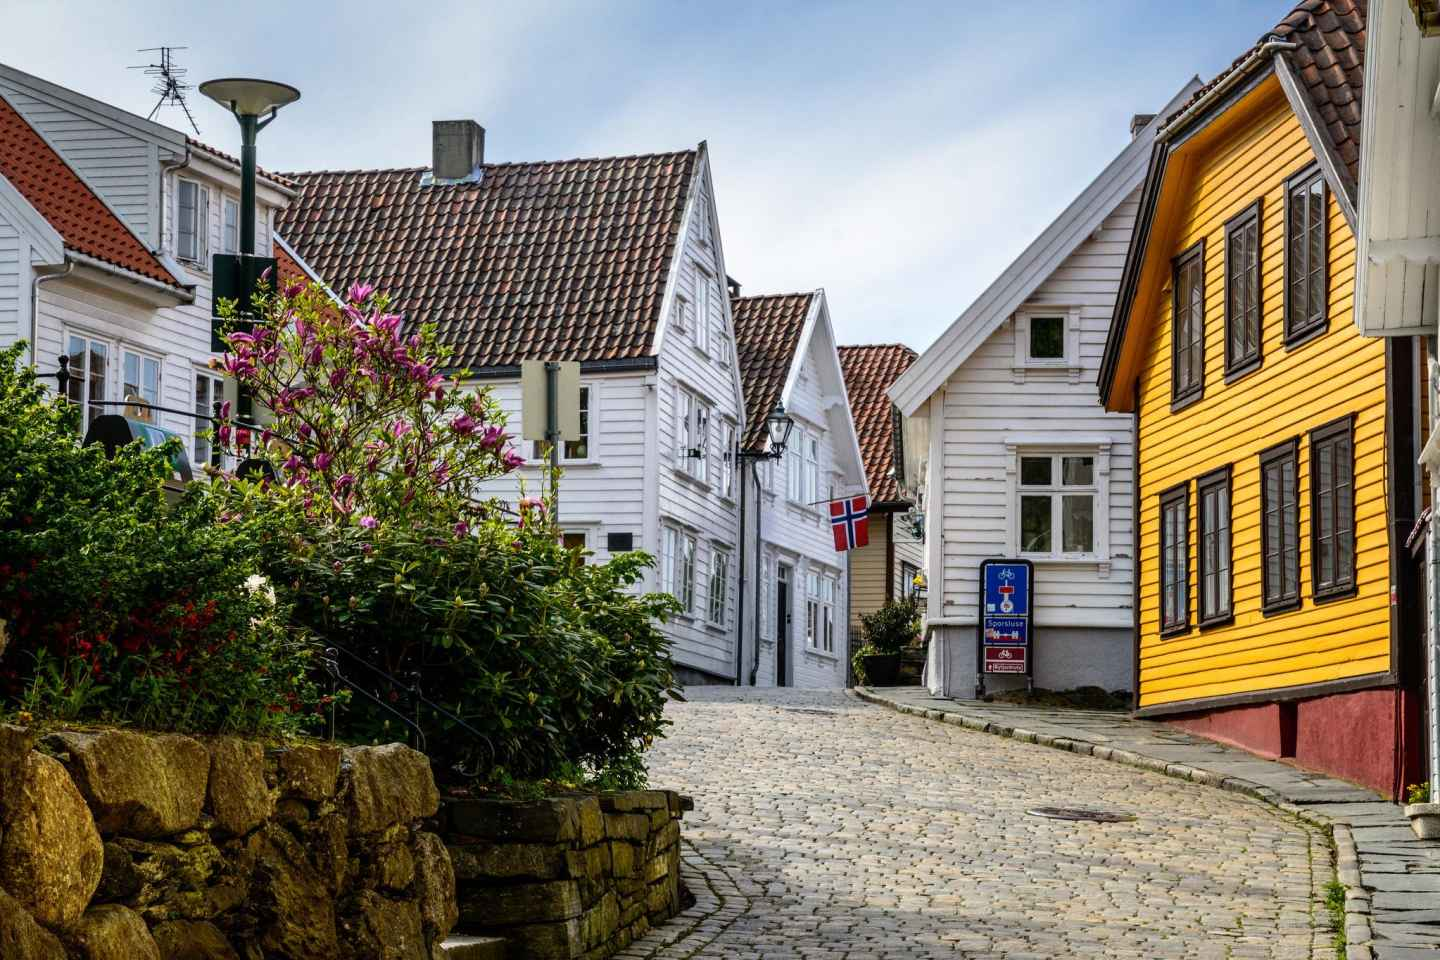 Stavanger: Customized Private Tour with a Local